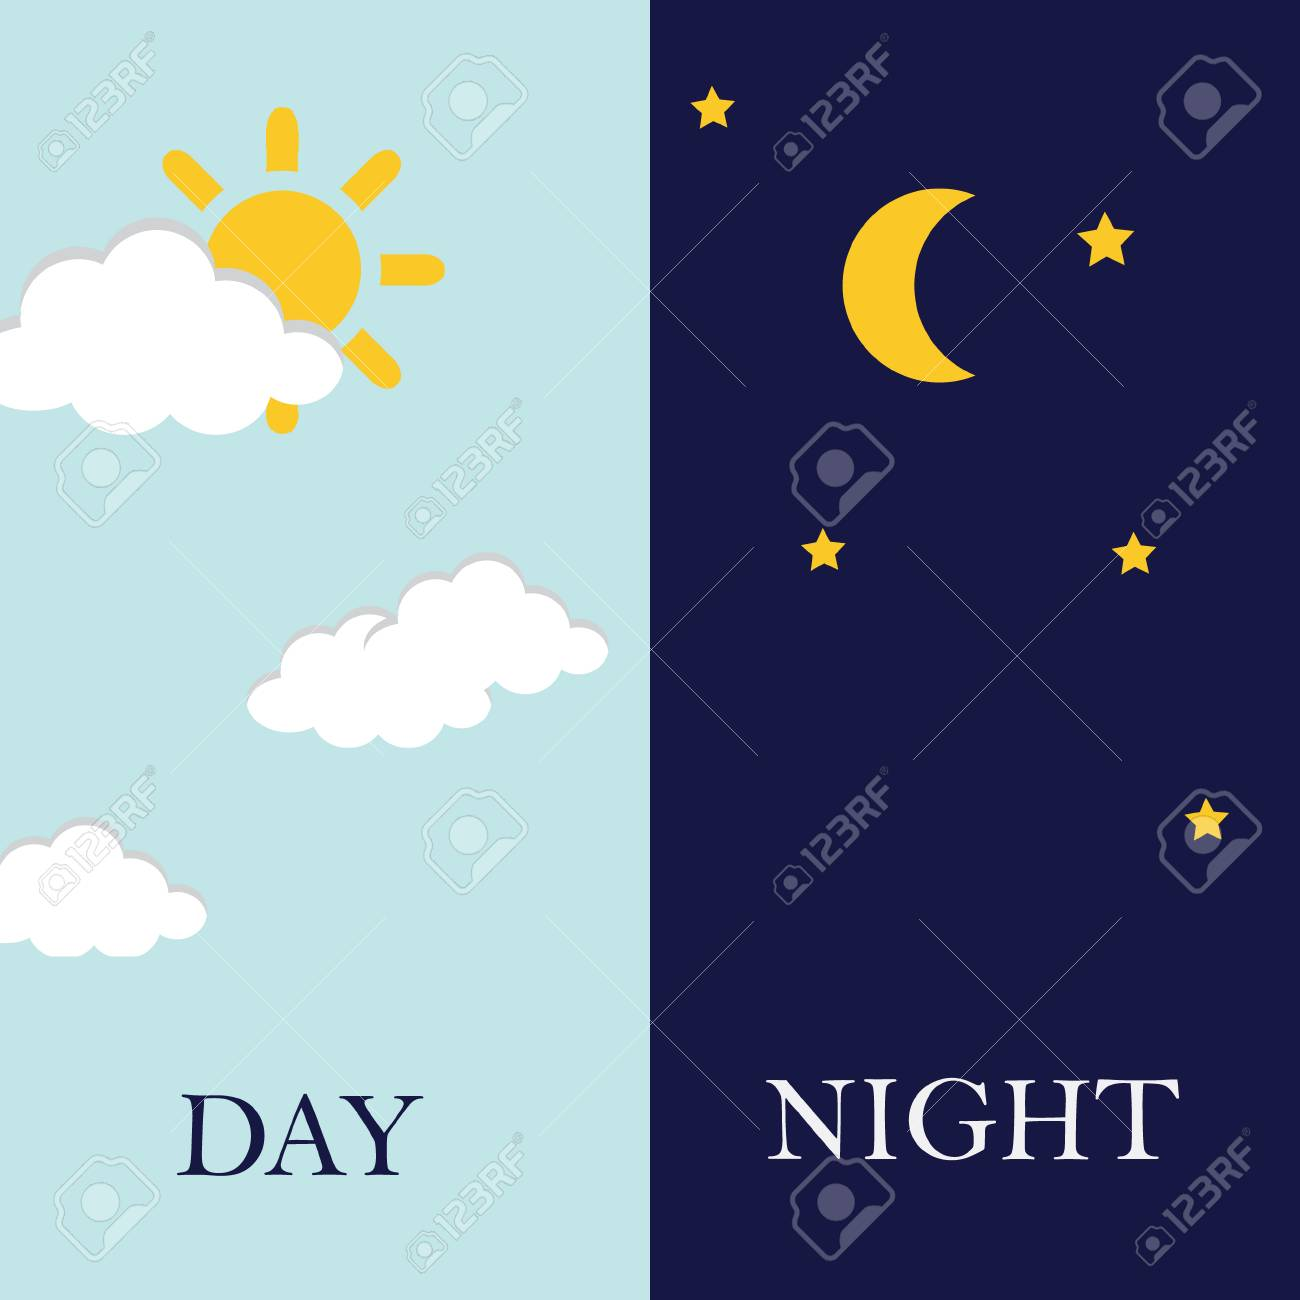 Vector illustration of day and night. Day night concept, sun and moon, day night icon - 62145598